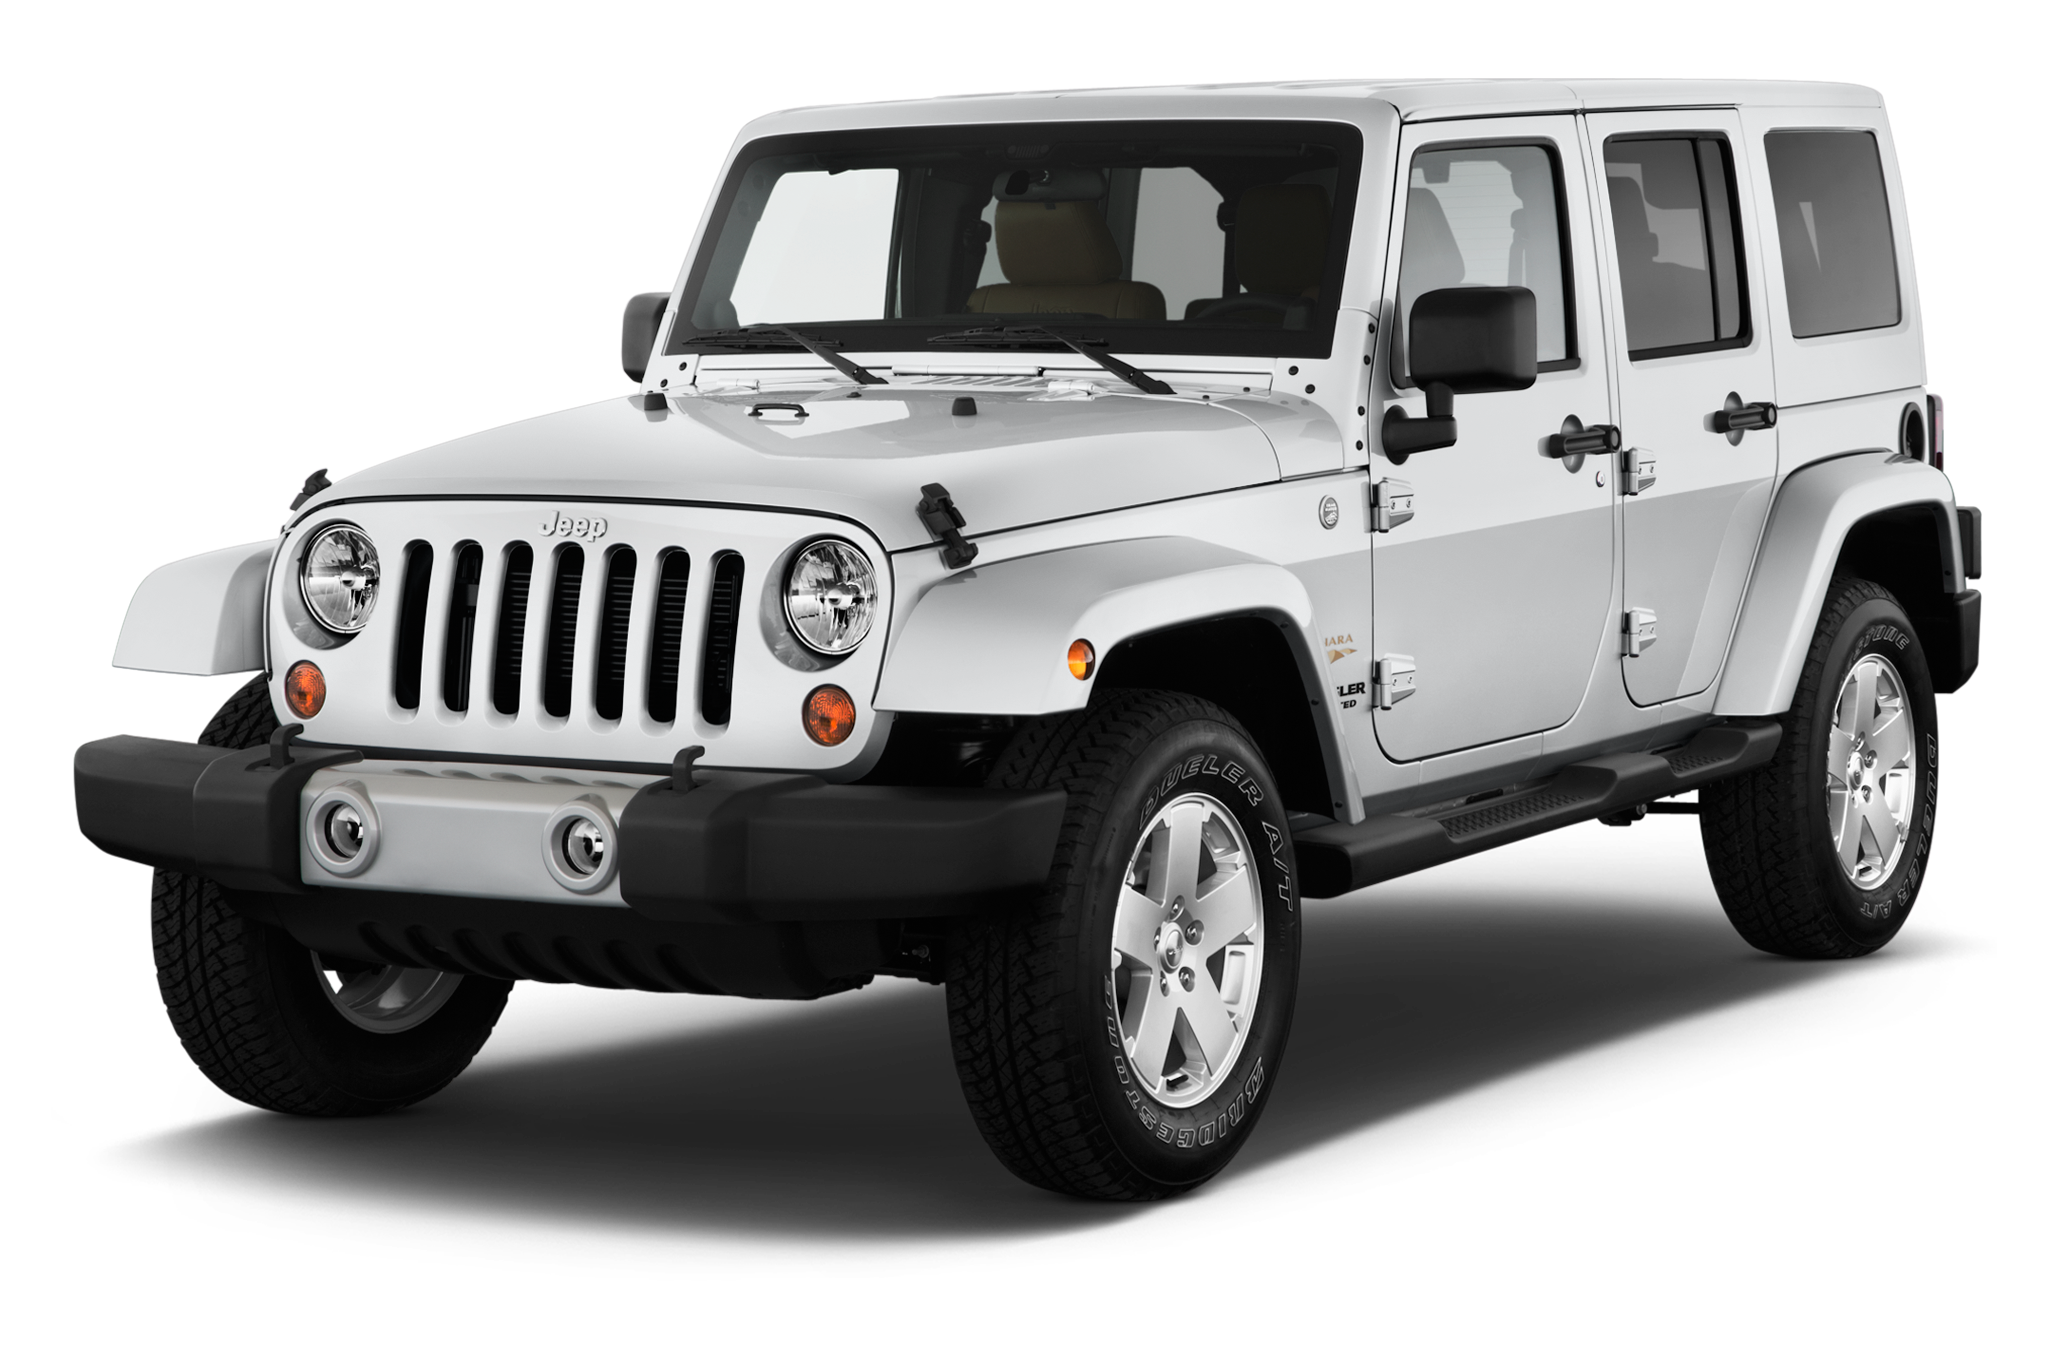 2012 Jeep Wrangler Unlimited Altitude Edition - Editors' Notebook ...